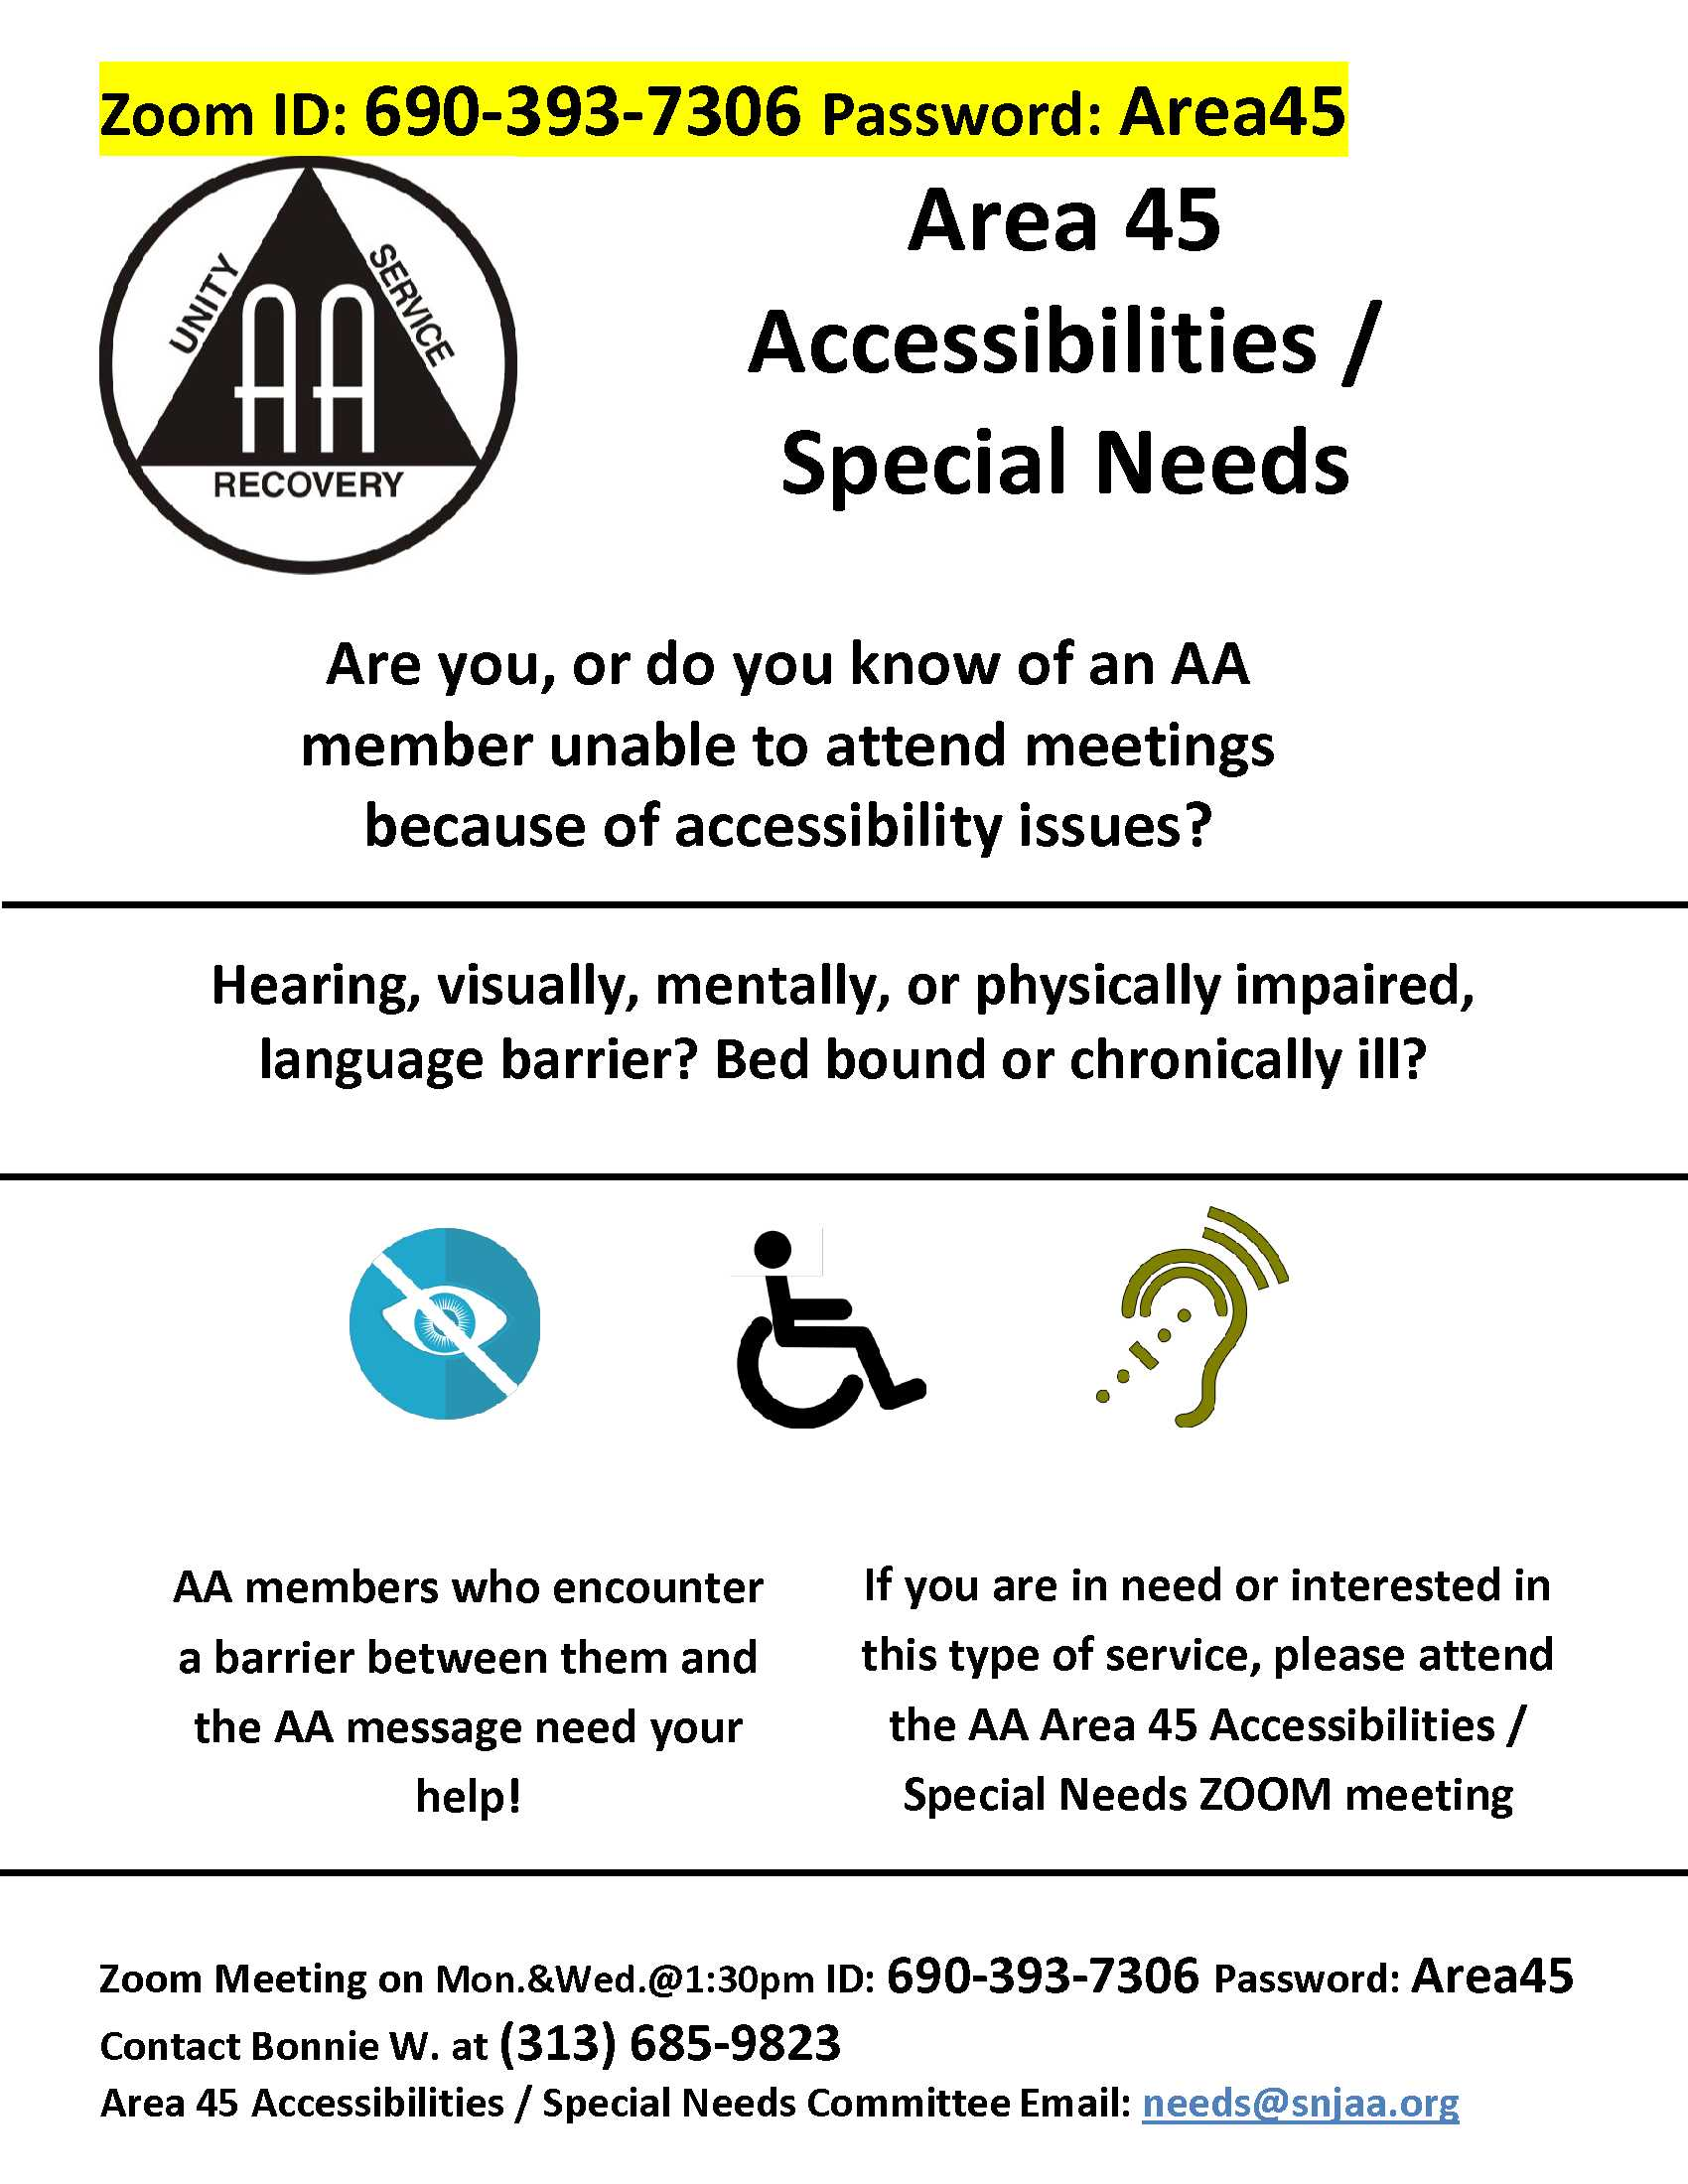 Area 45_Accessibilities-Special Needs – Zoom Meeting